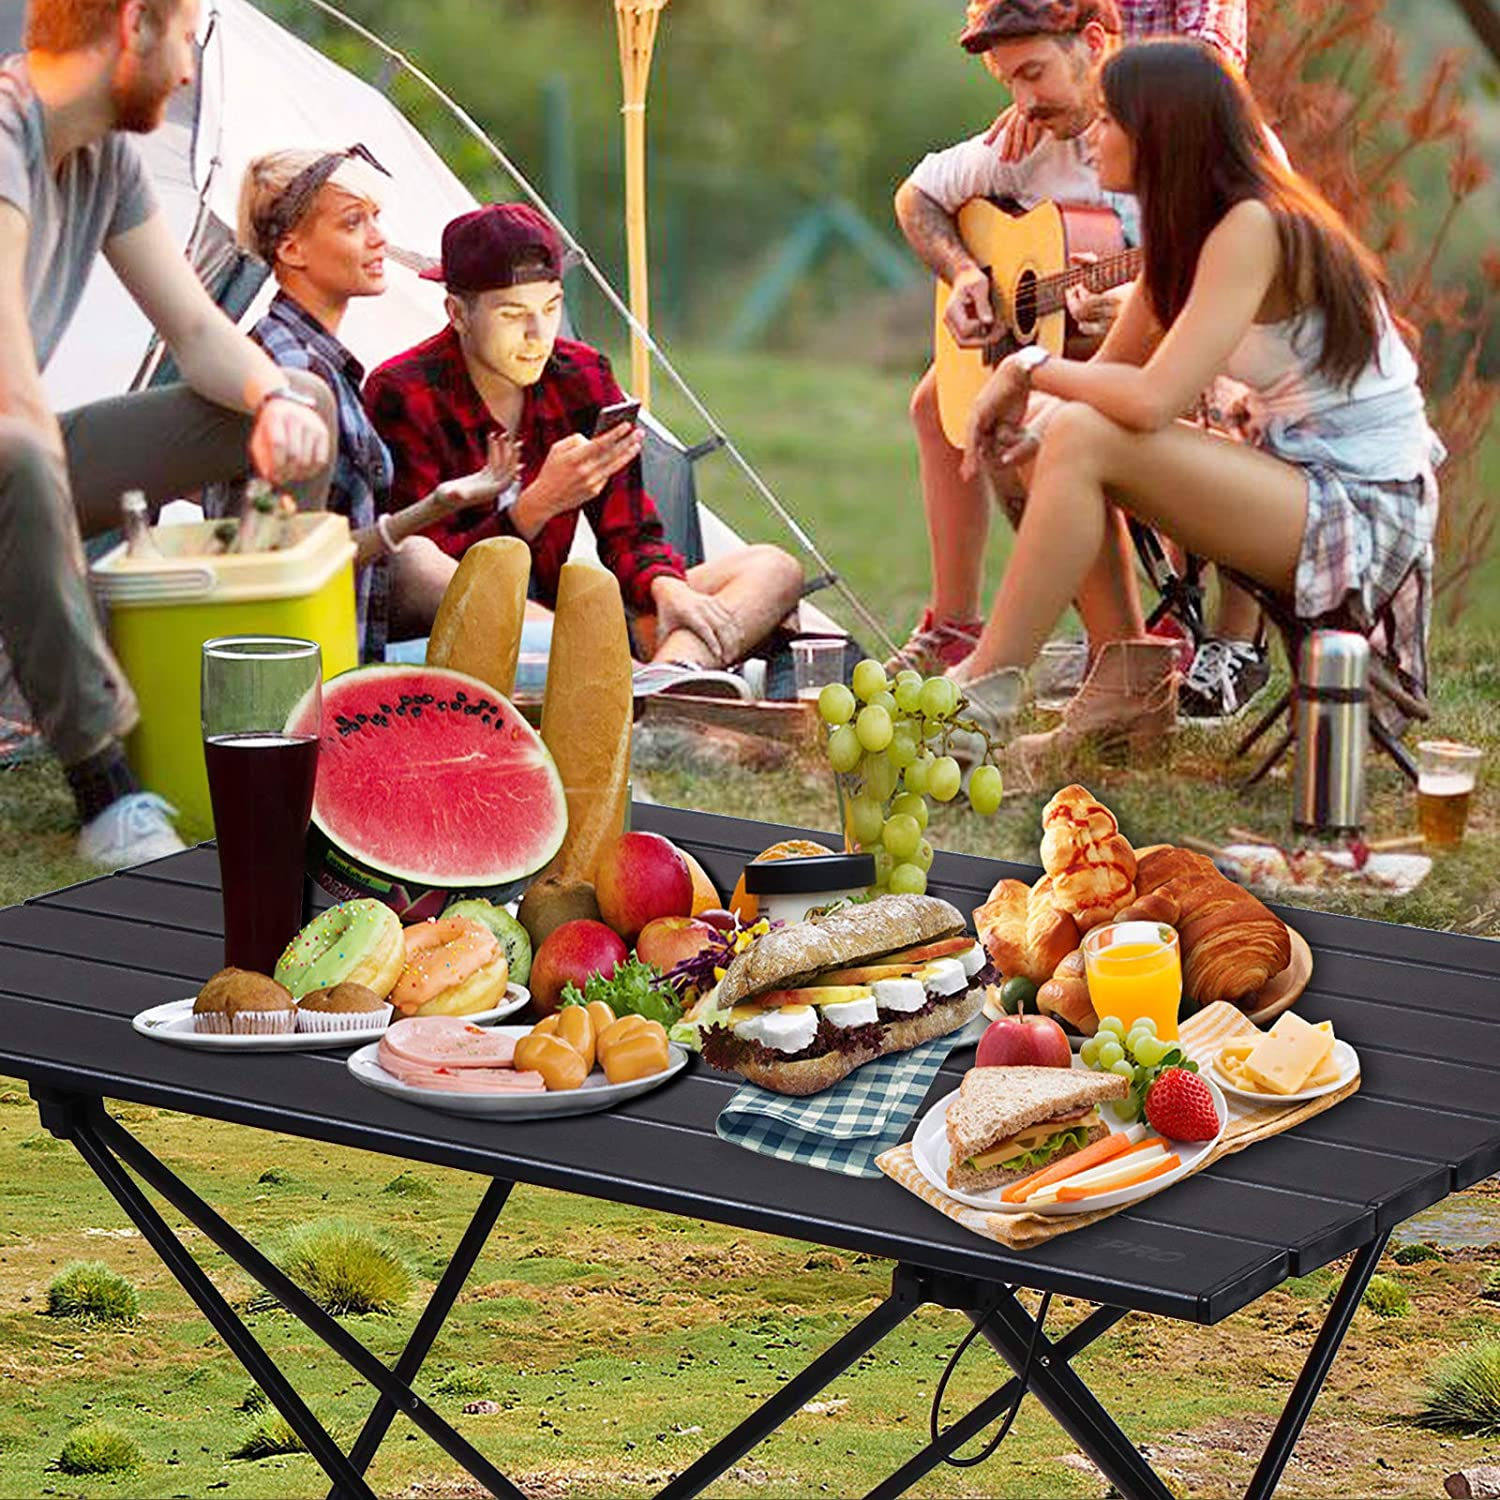 Fishing 68 X 46 X 40cm Beach Hiking Picnic Camping Ideal for Outdoor Ultralight Folding Table with Aluminum Table Top and Carry Bag Cooking RISEPRO Portable Camping Table Easy to Carry